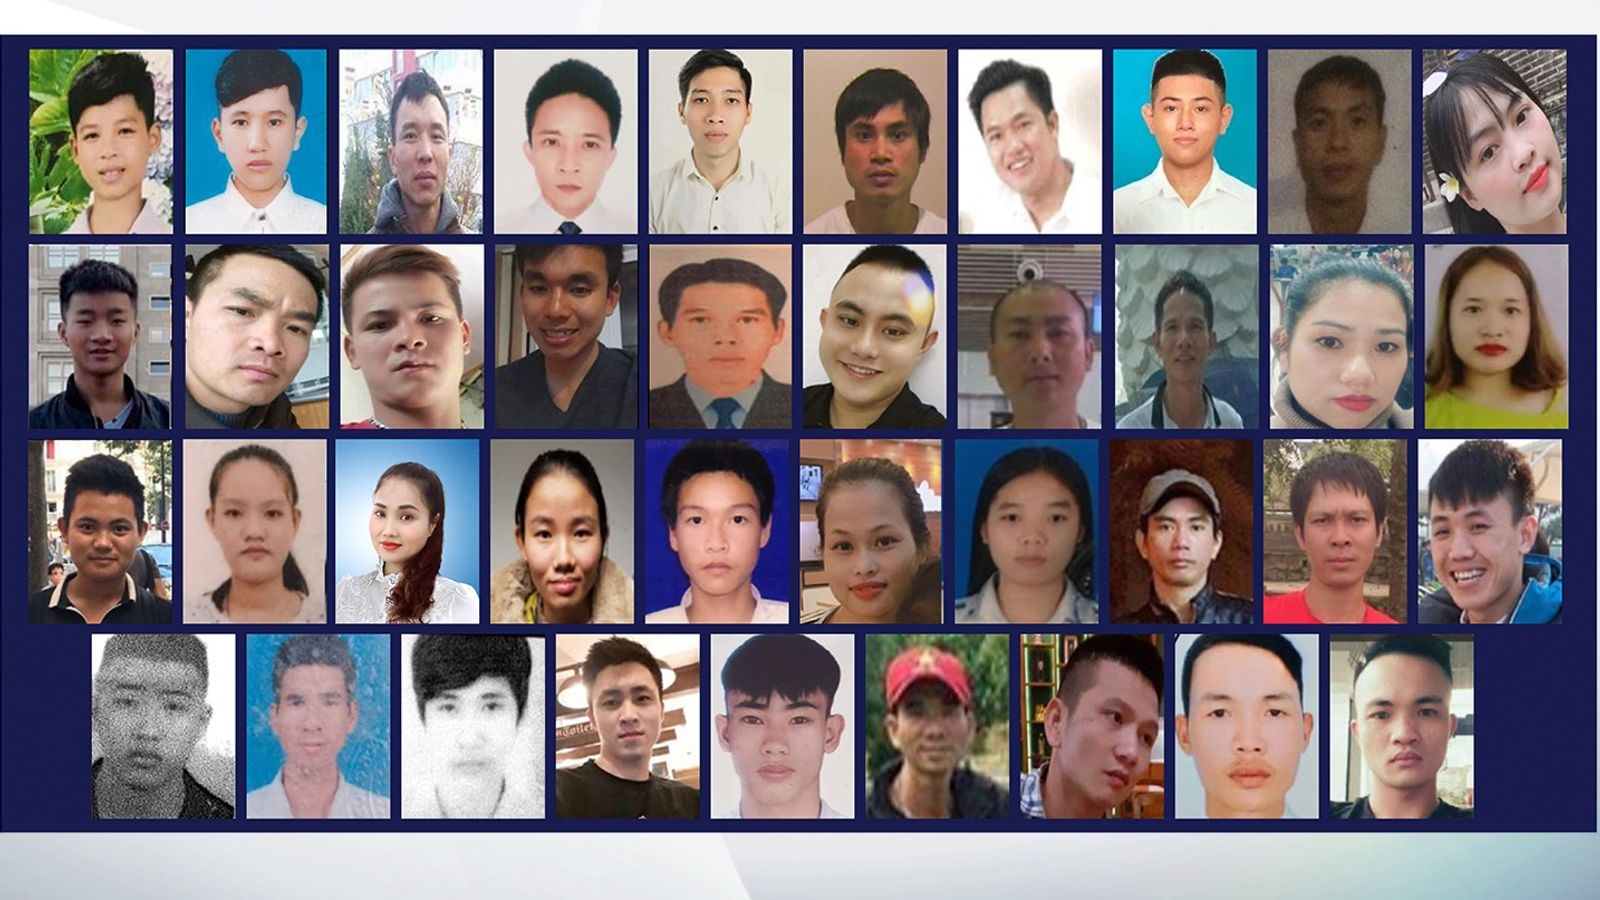 Vietnamese truck deaths: Two men found guilty of manslaughter of 39 people in UK